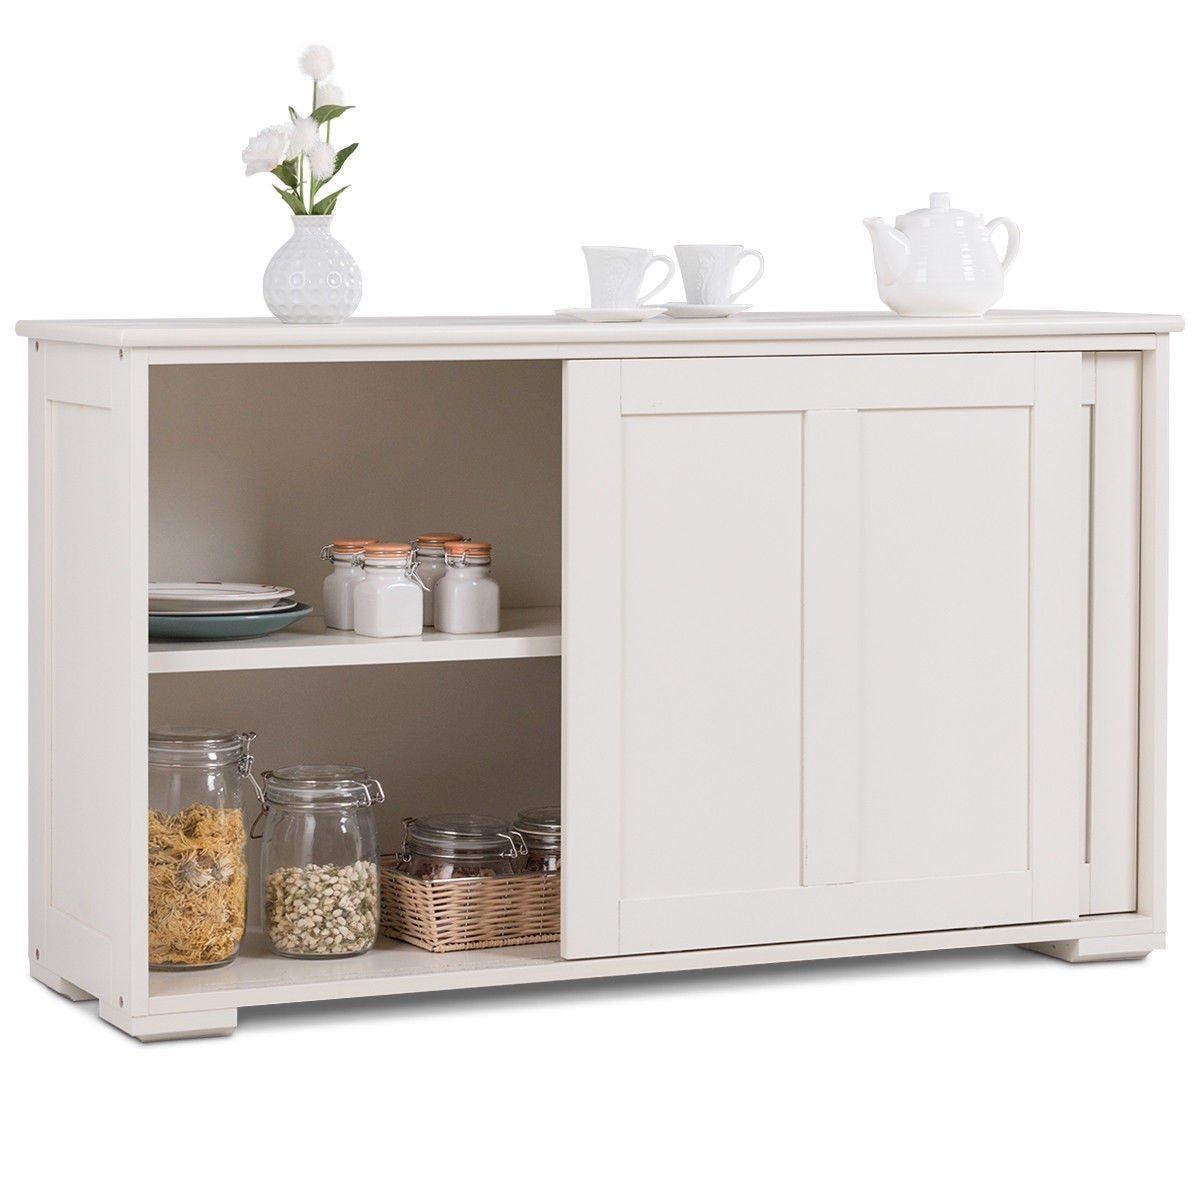 Costway Kitchen Storage Cabinet Sideboard Buffet Cupboard Wood Sliding Door Pantry Throughout Contemporary Style Wooden Buffets With Two Side Door Storage Cabinets (View 6 of 30)